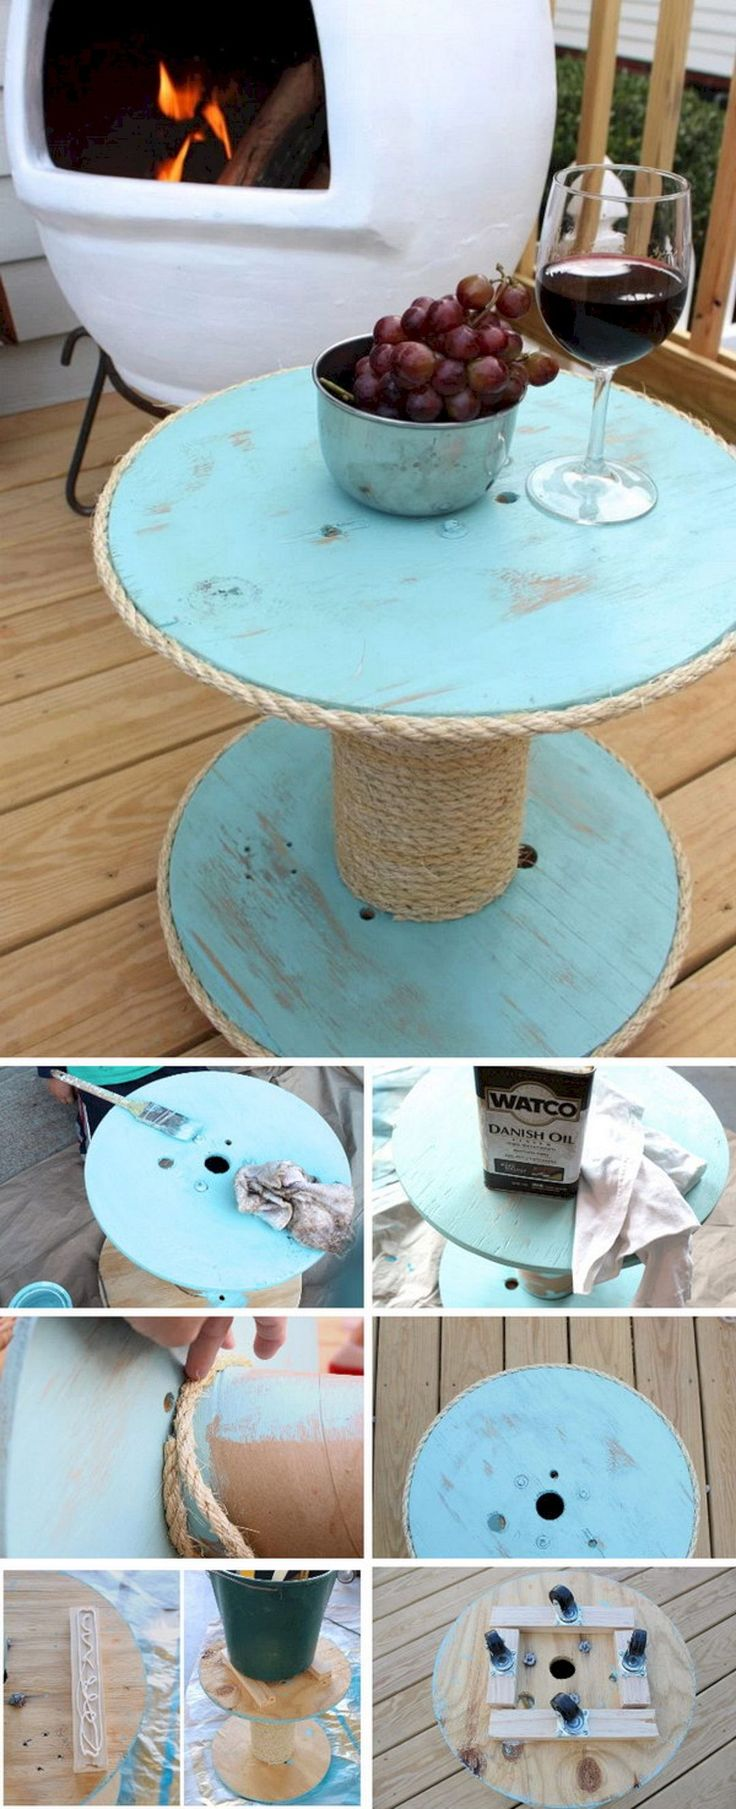 Epic Top 88 Marvelous DIY Recycled Wire Spool Furniture Ideas For Your Home https://freshouz.com/top-88-marvelous-diy-recycled-wire-spool-furniture-ideas-home/